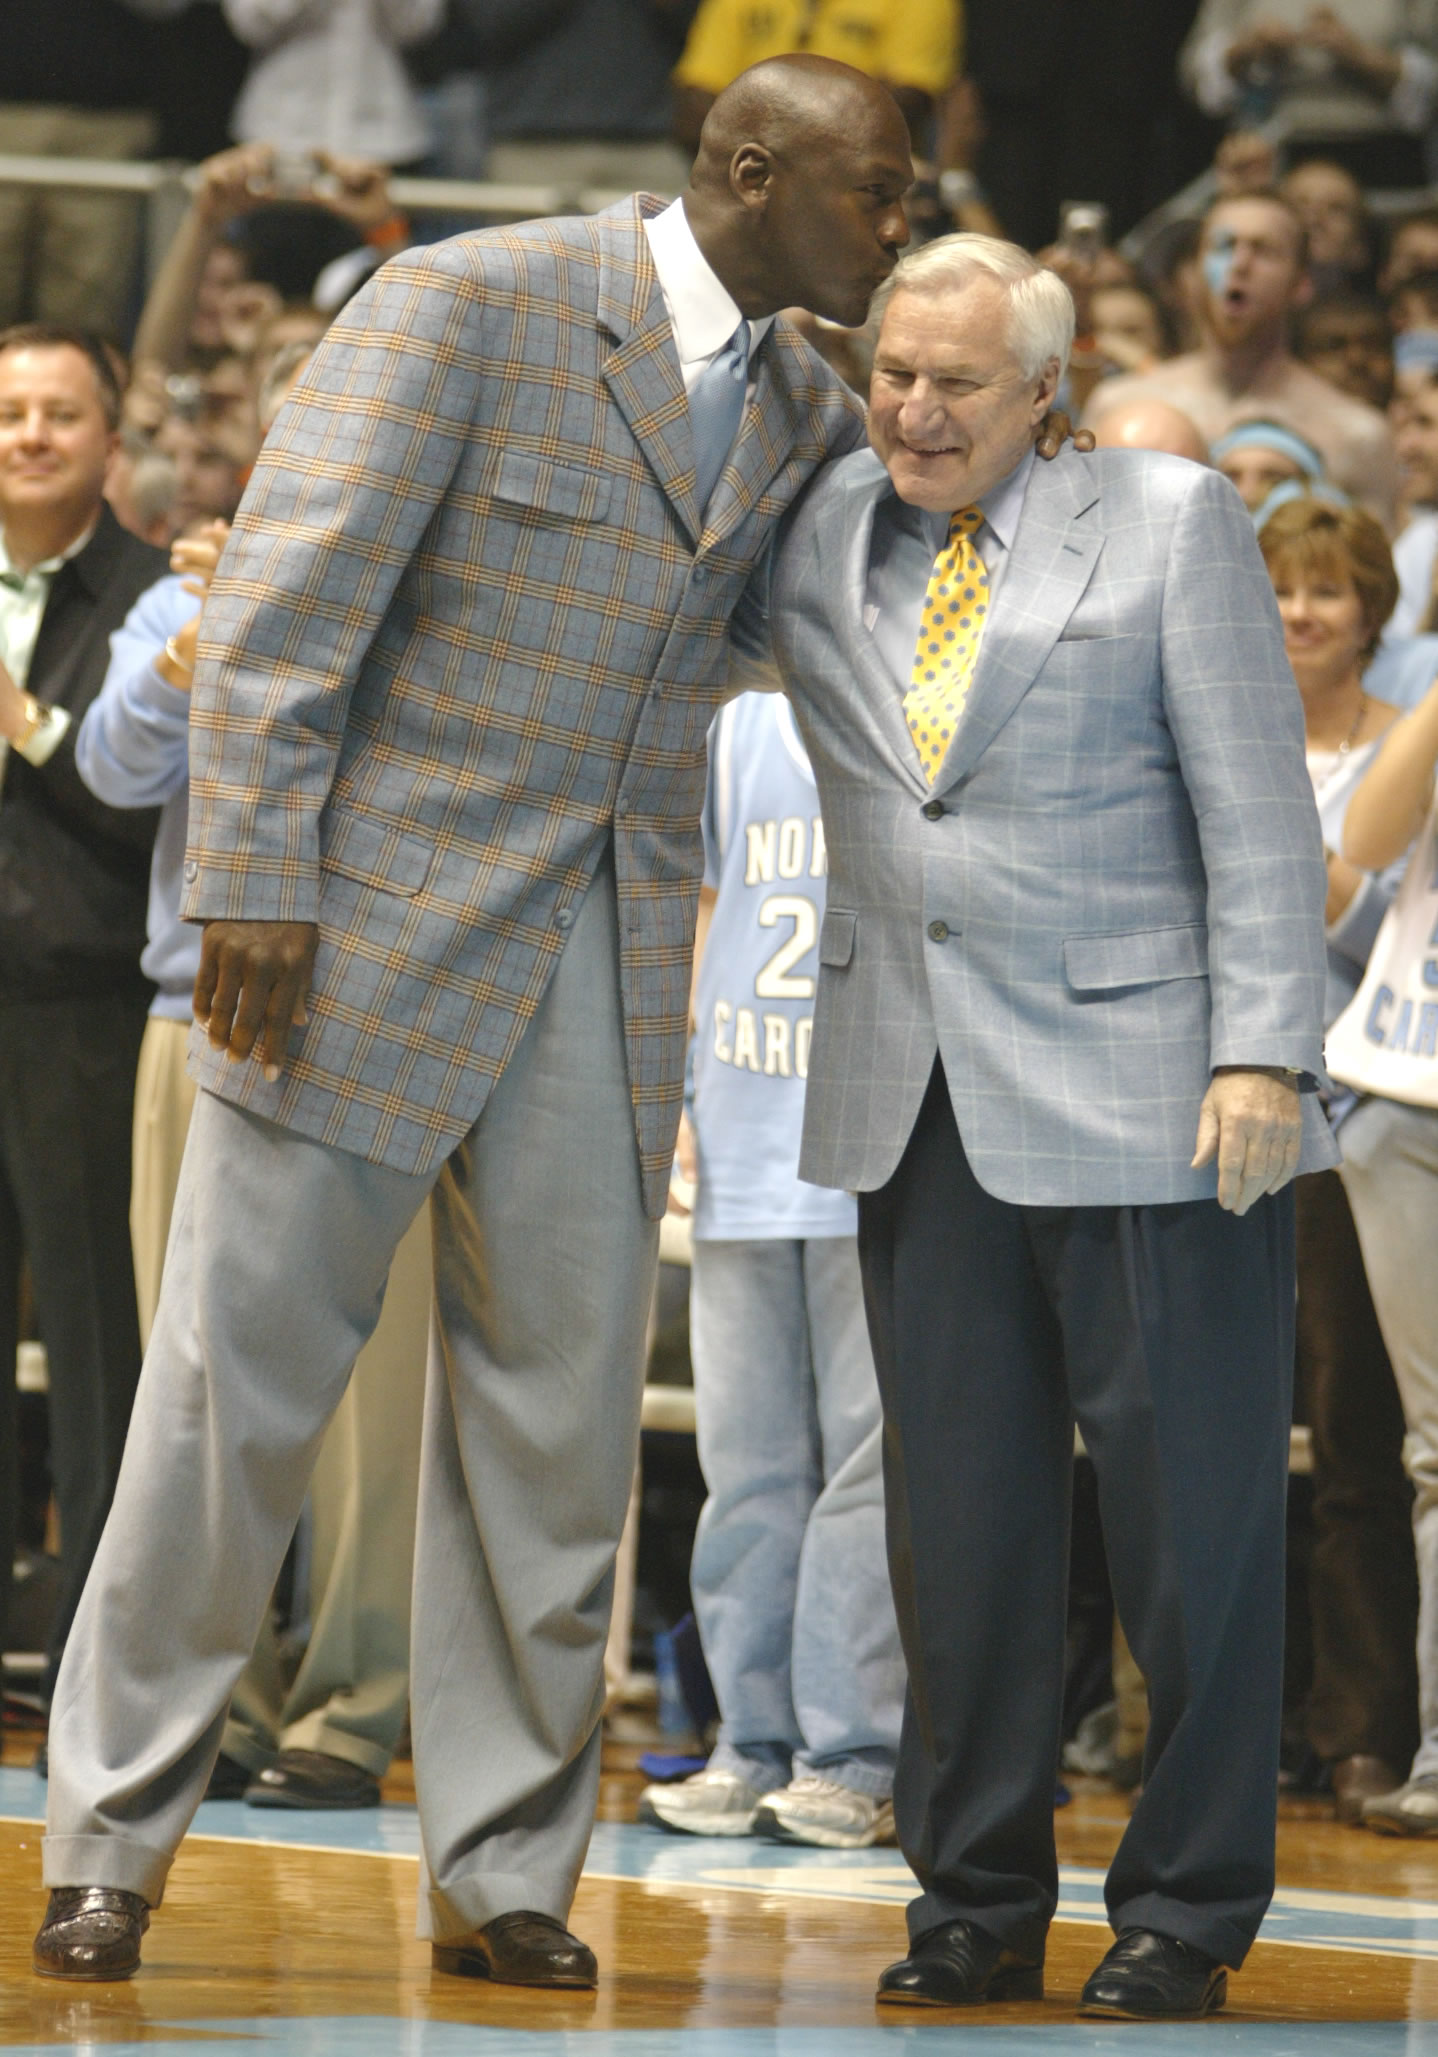 MJ and Coach